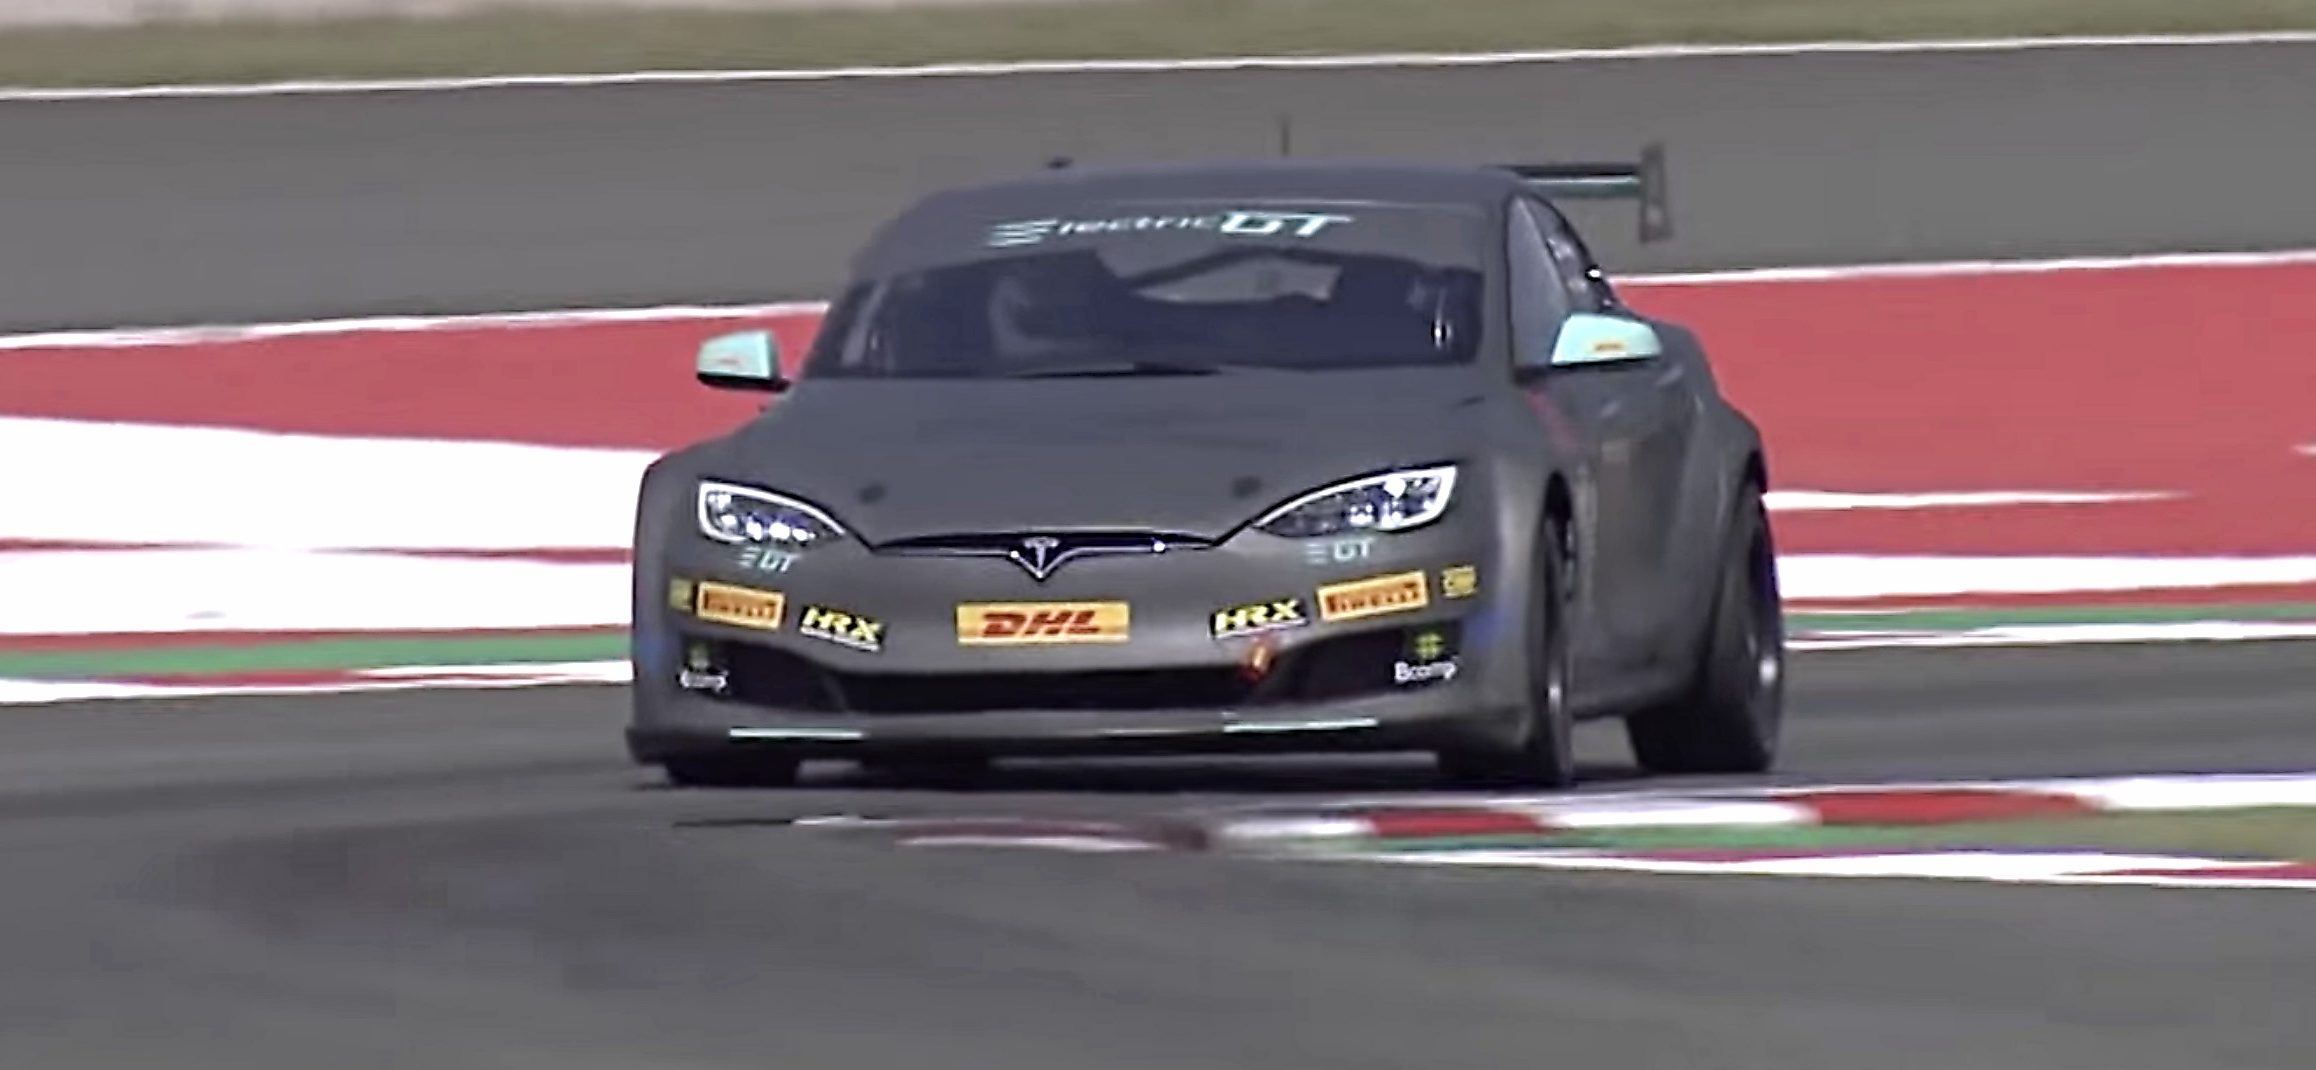 Tesla Model S P100dl Electric Gt Race Car Track Tested By Top Gear Veteran